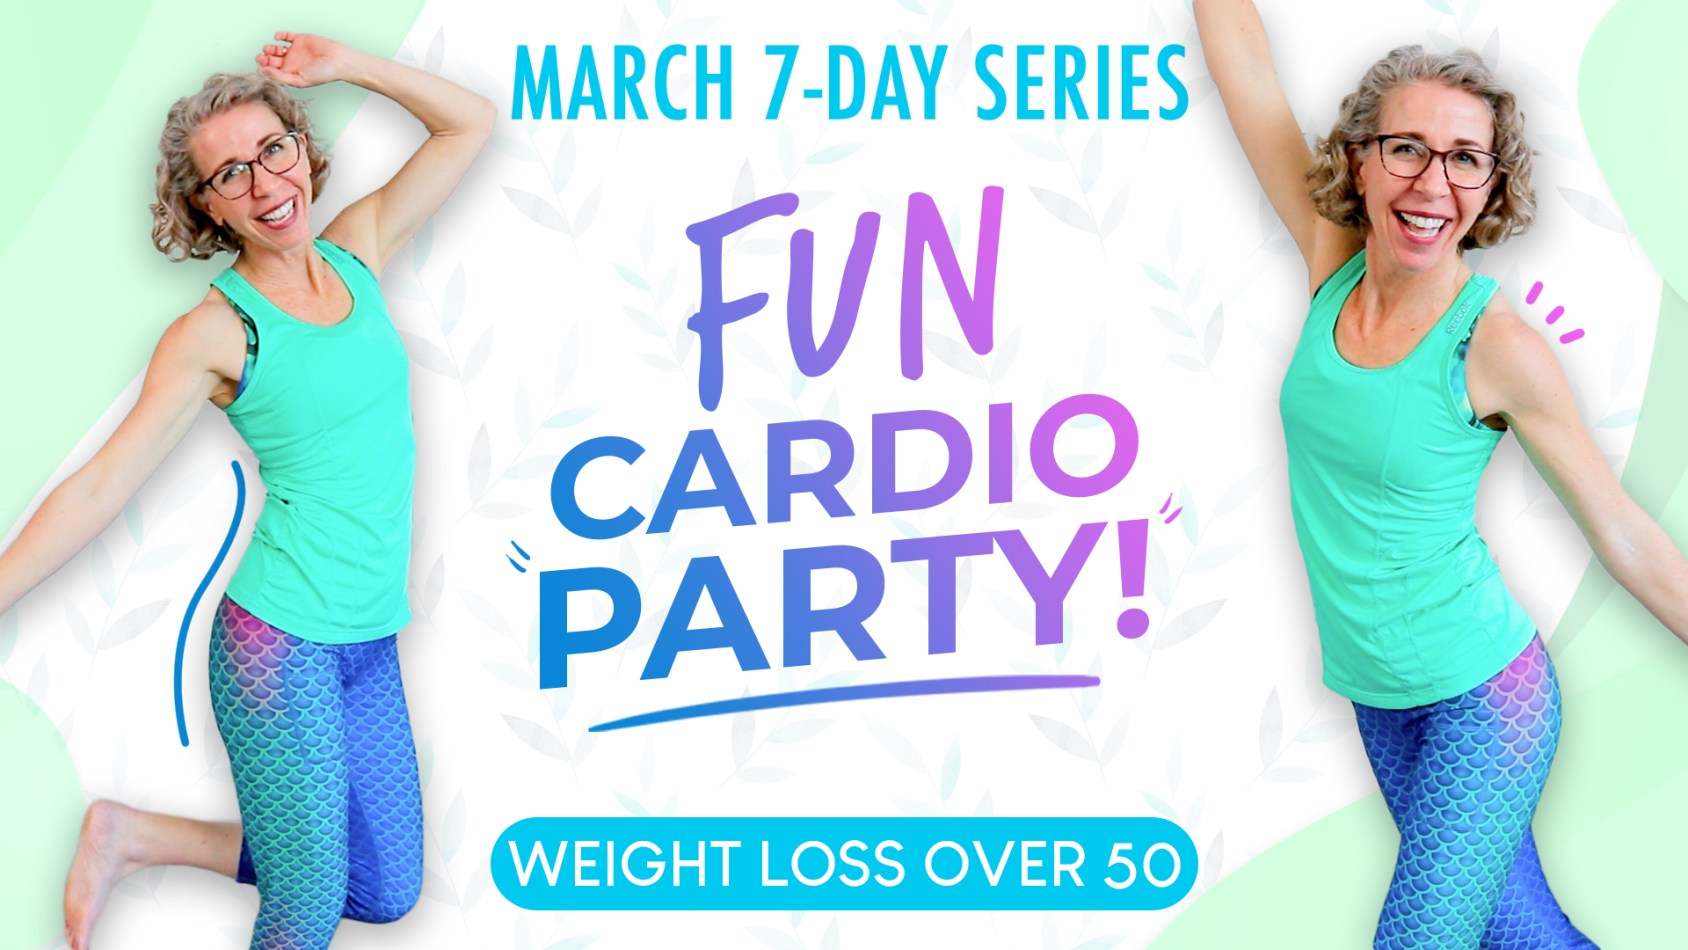 FUN Cardio Party! Low Impact WEIGHT LOSS Workout to Get Results ???? Pahla B Fitness